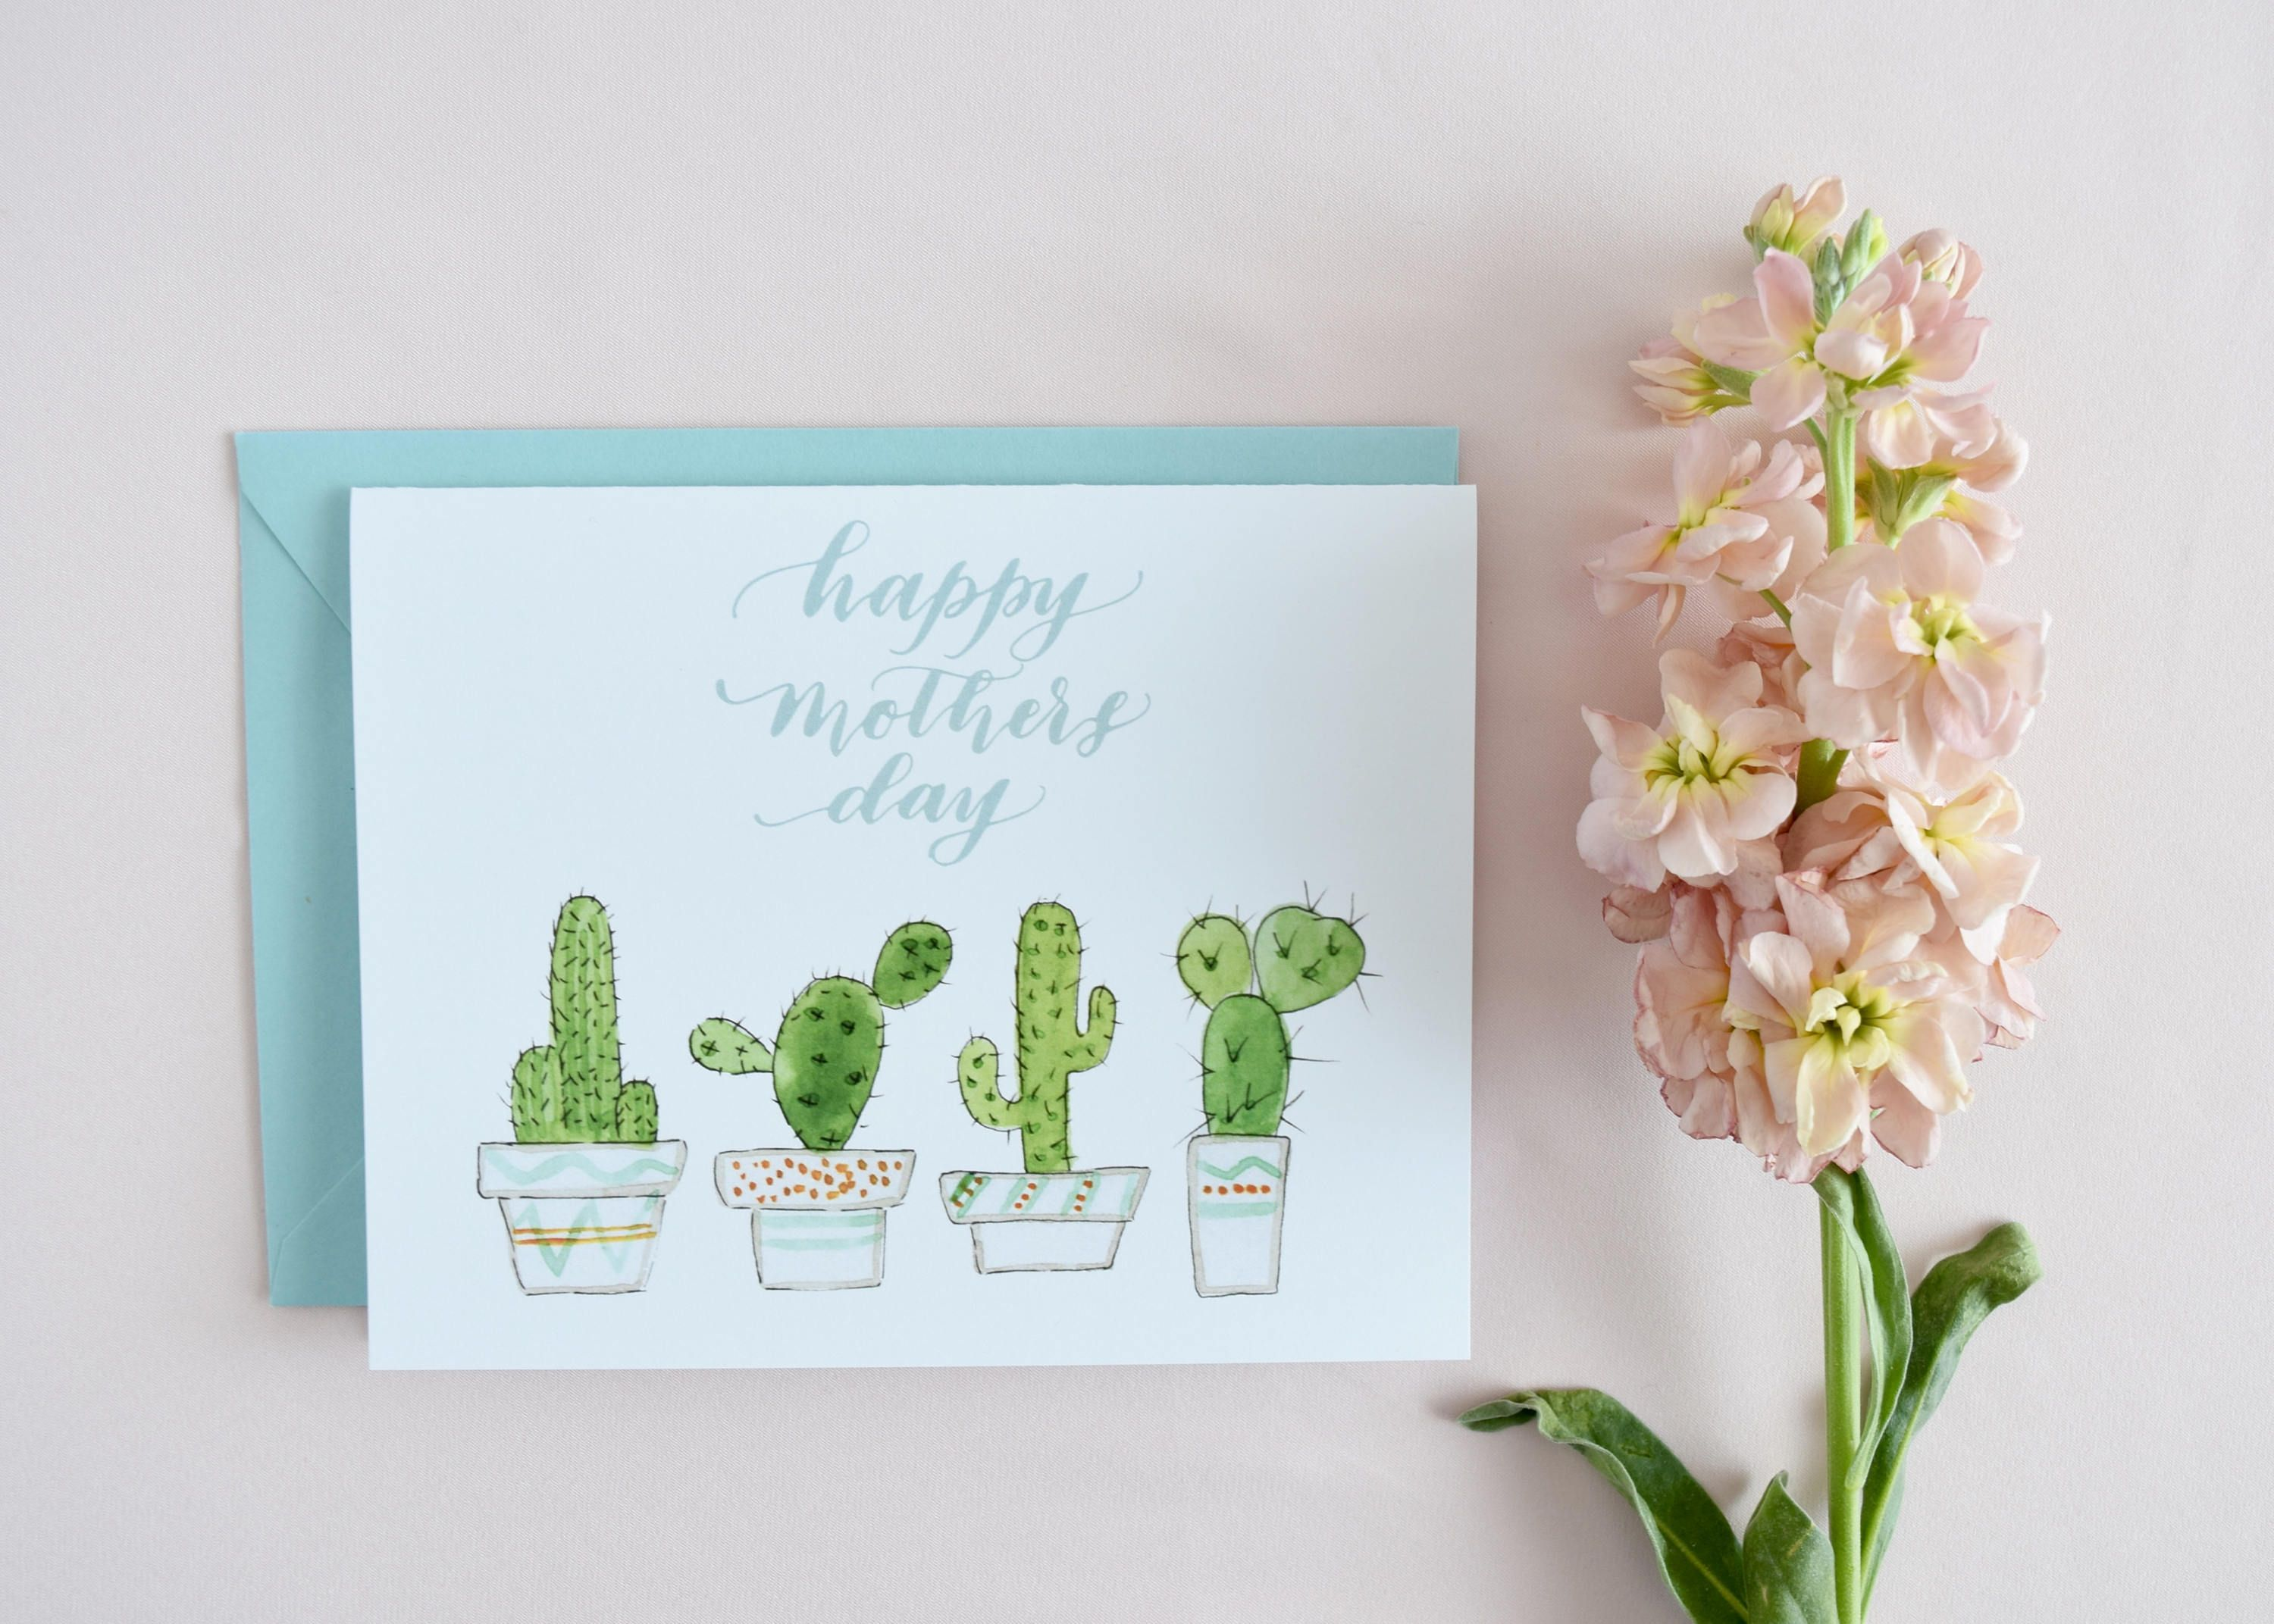 Happy mothers day cactus illustration mothers day card